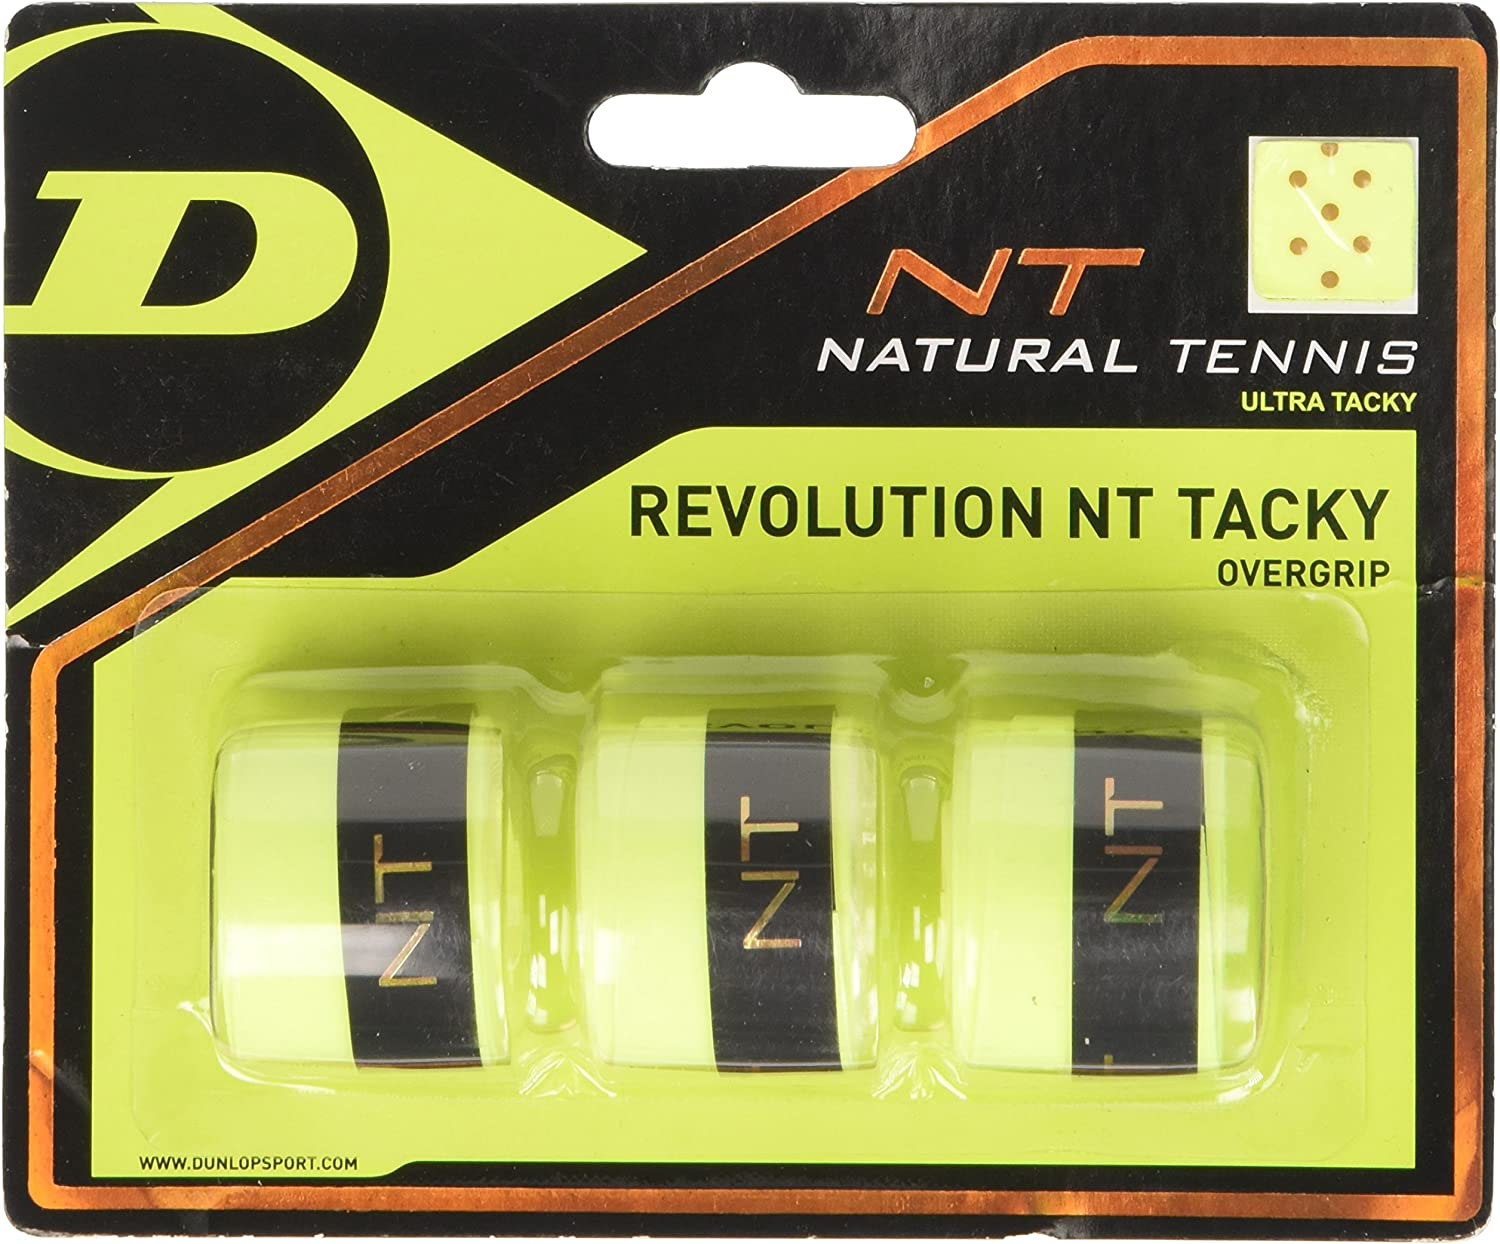 Dunlop Over Grip Revolution NT Tacky 3 Unidades, Amarillo, One ...